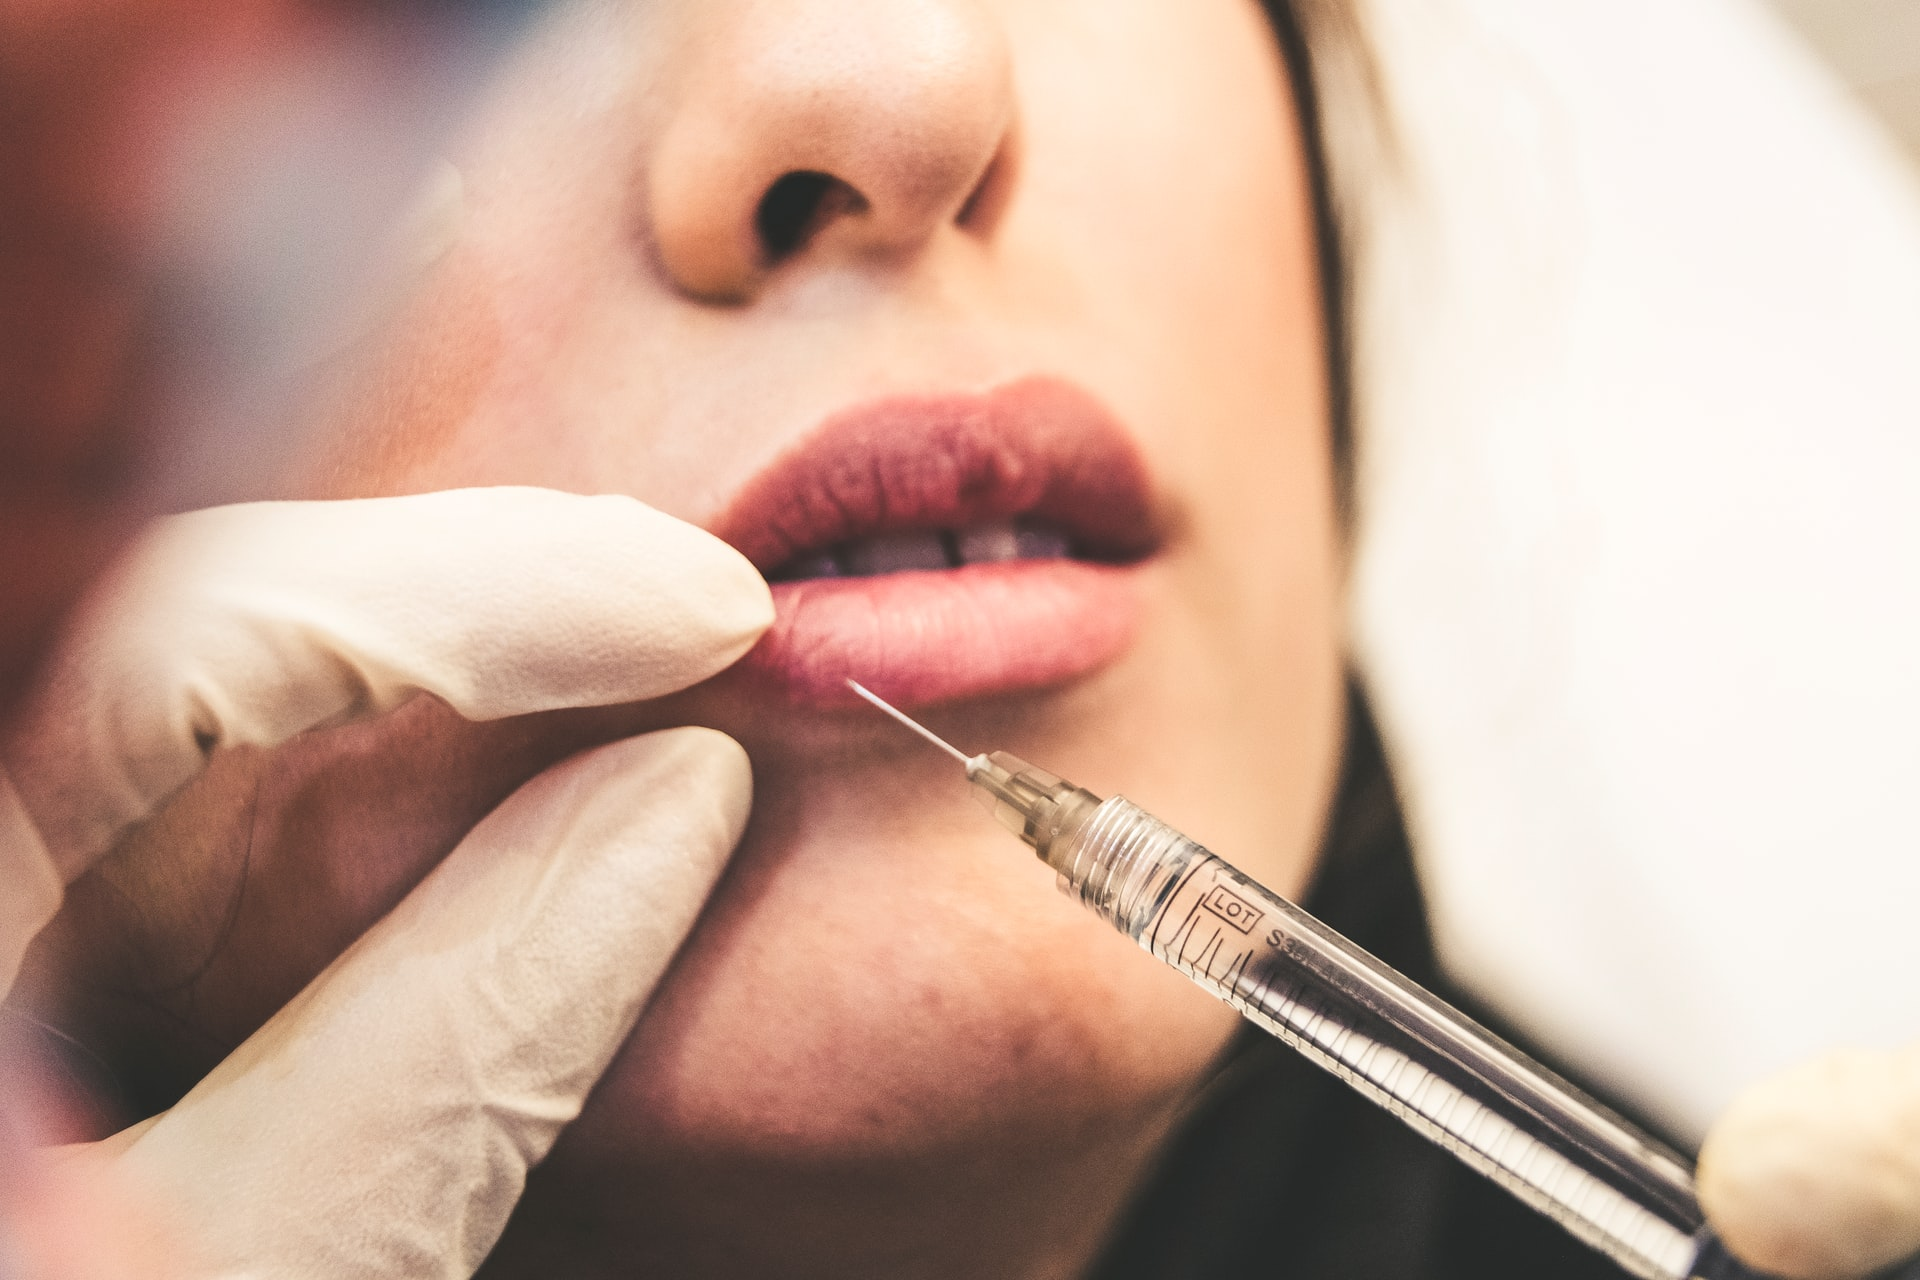 Botox – Usage, Procedure, and Possible Side Effects